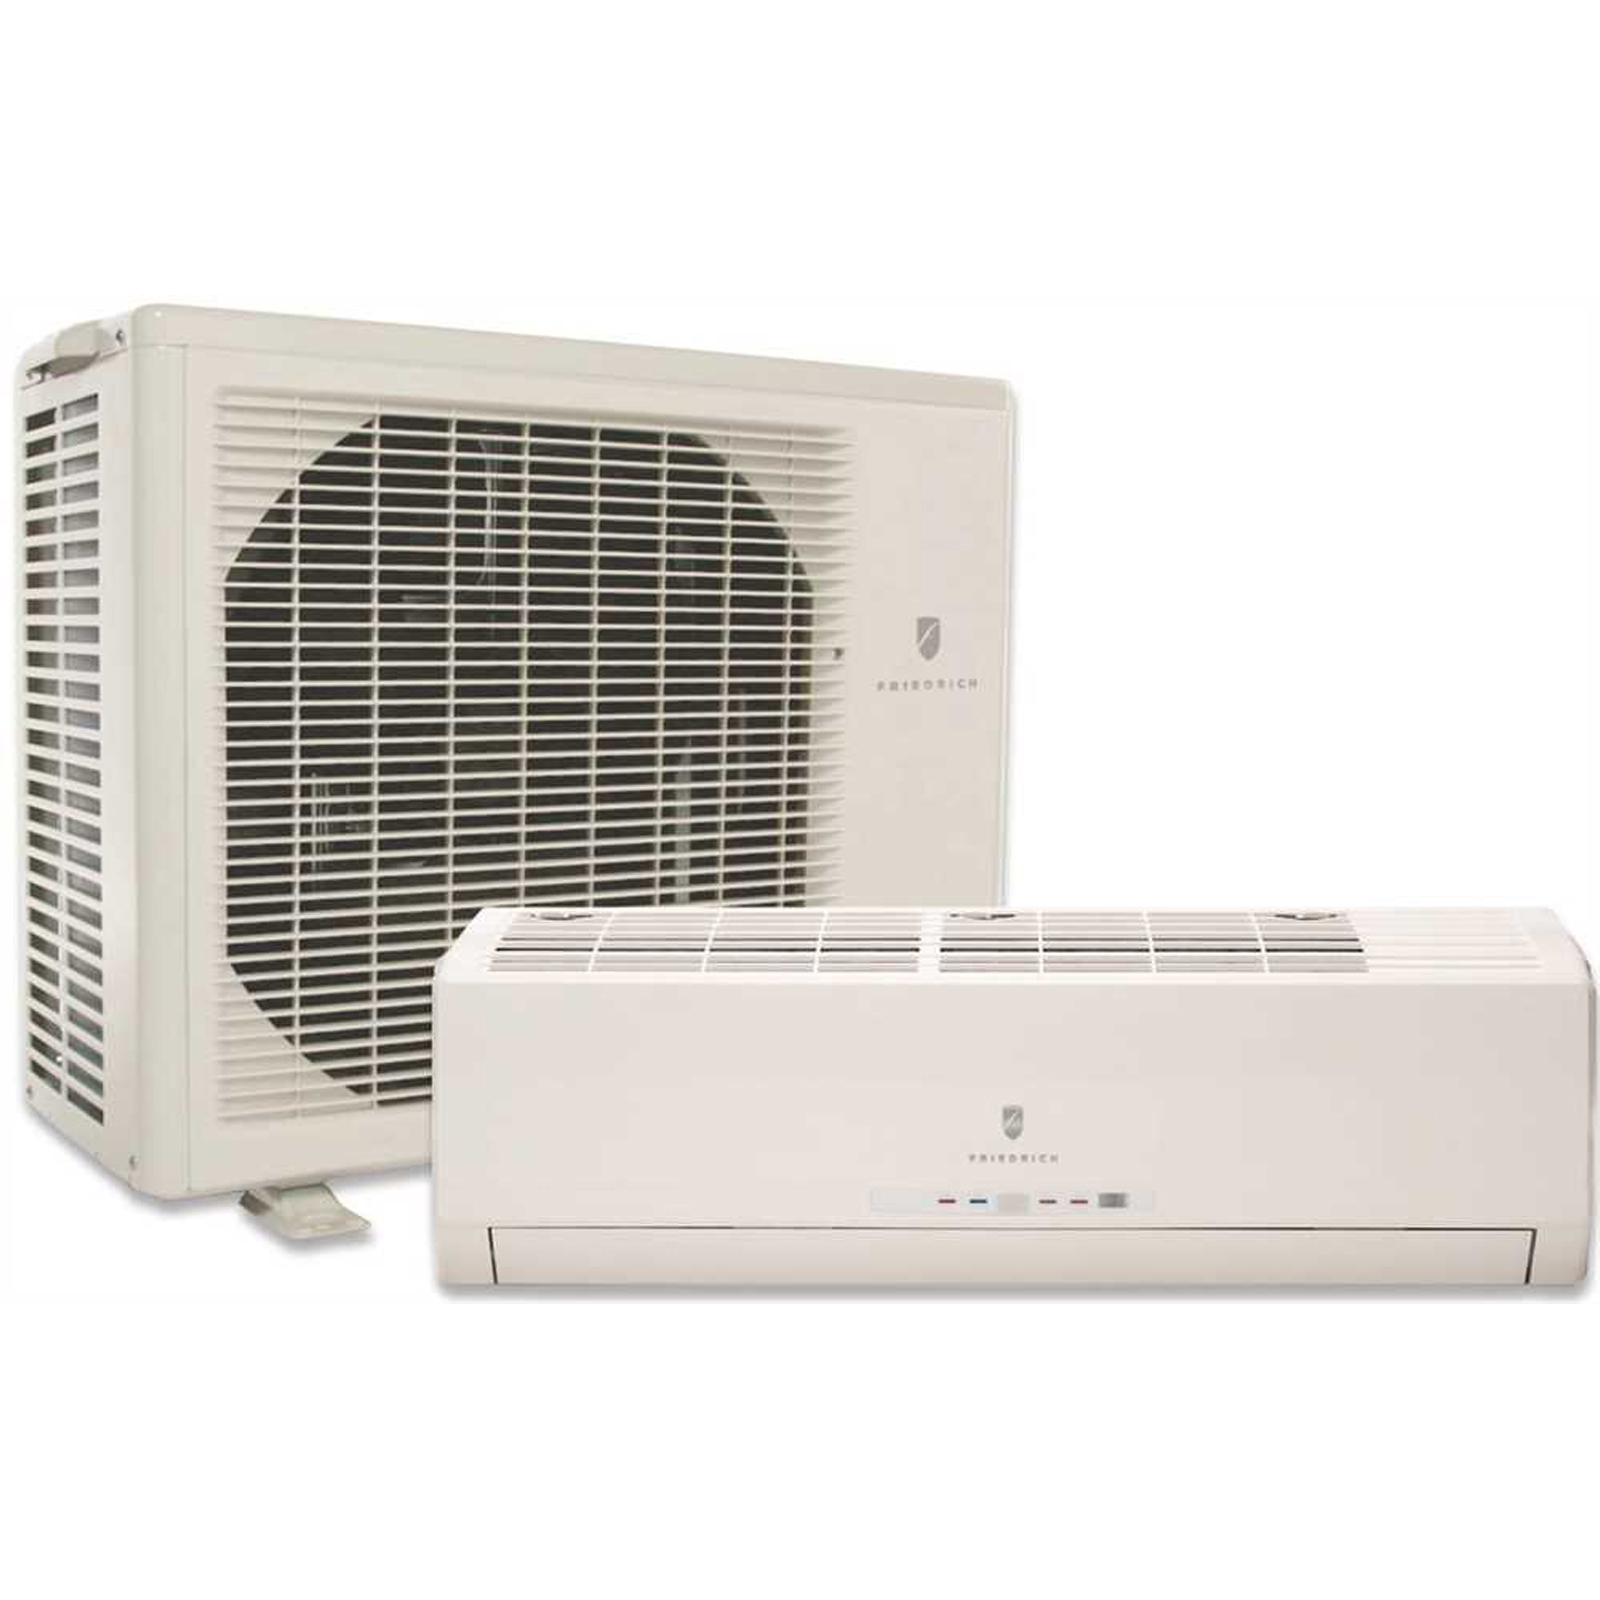 Friedrich M09CJ Energy Star Qualified  Single Zone  Wall-Mounted  Cool Only  Ductless Split System with Inverter Technology  9 000 BTU Coo PartNumber: MCR1647792212